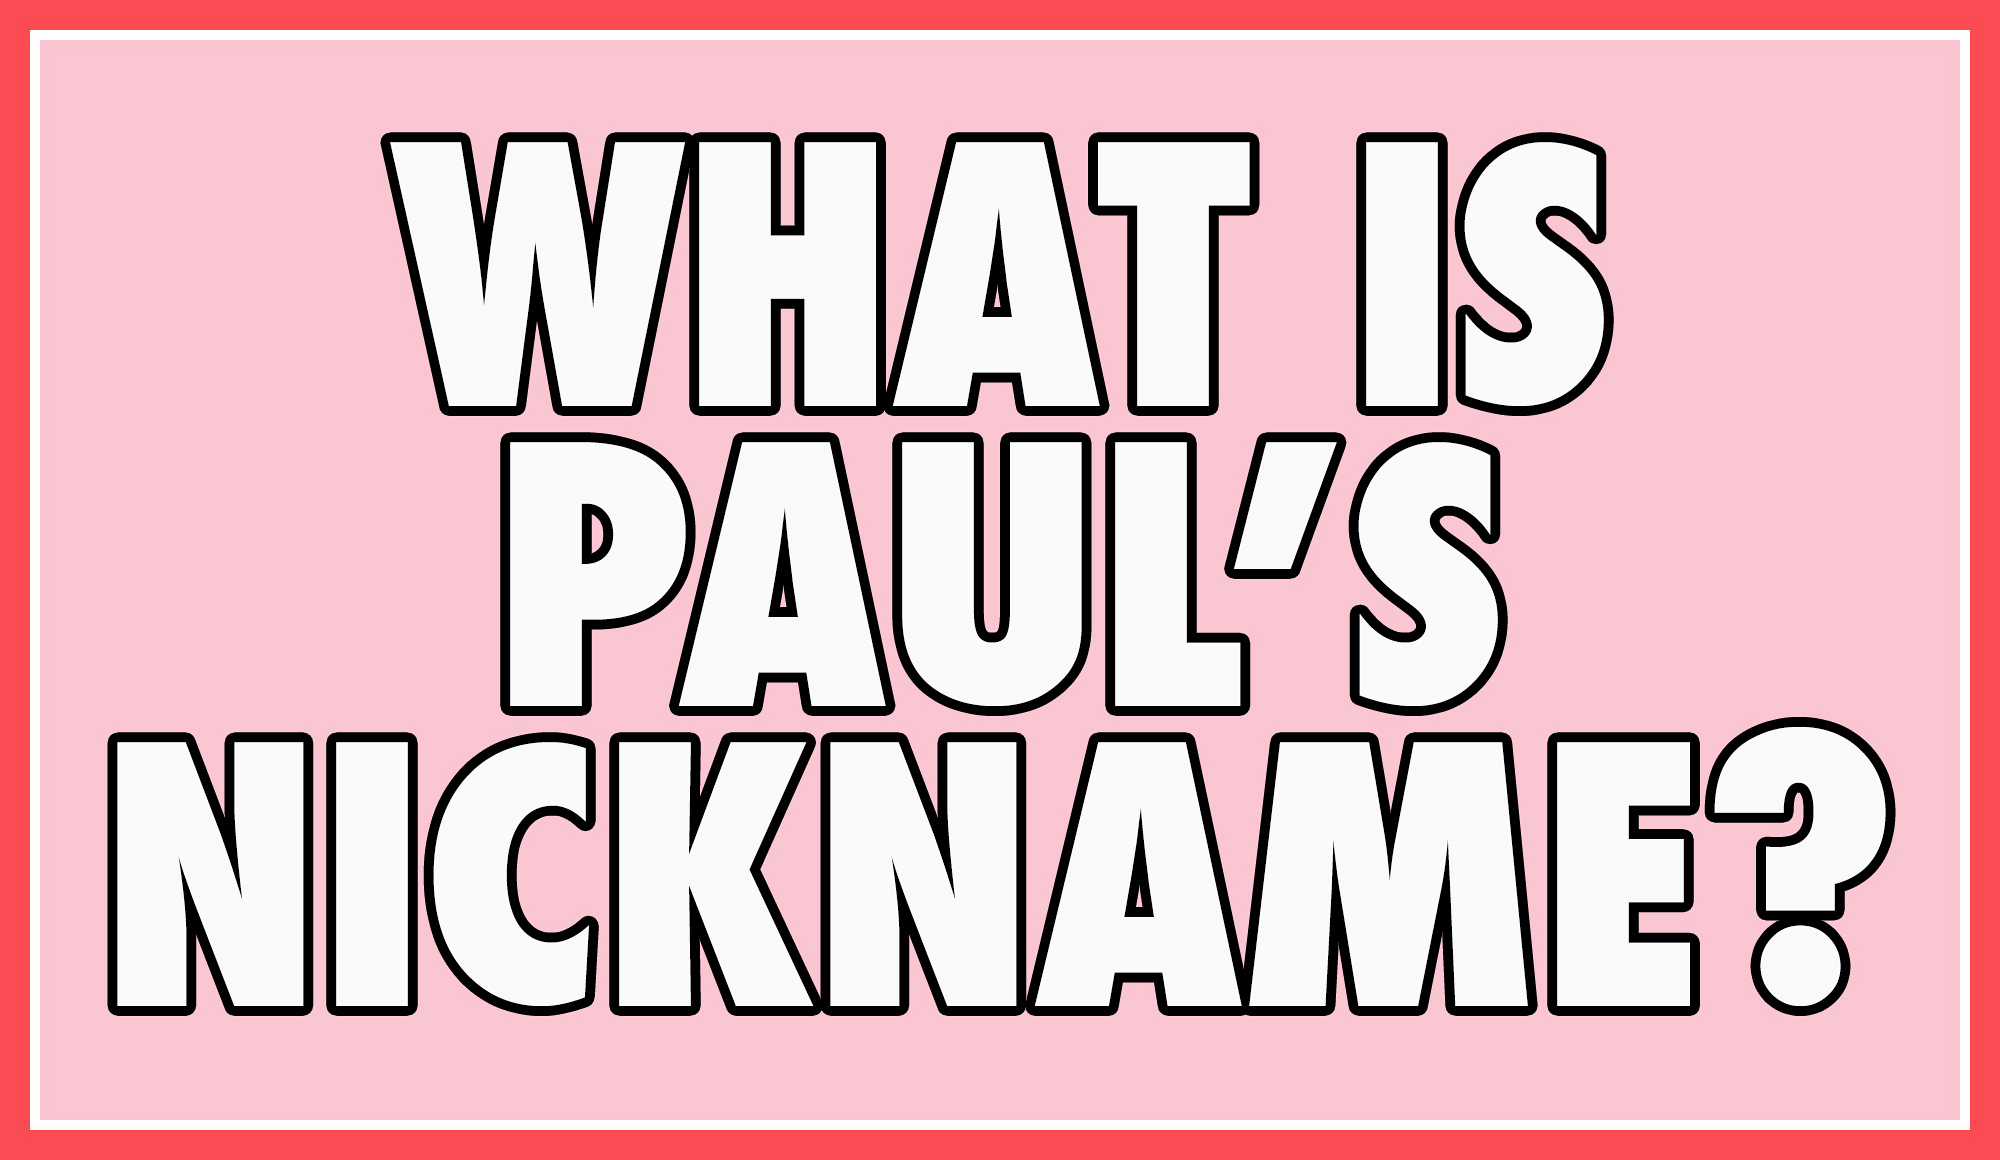 What is Paul's nickname?